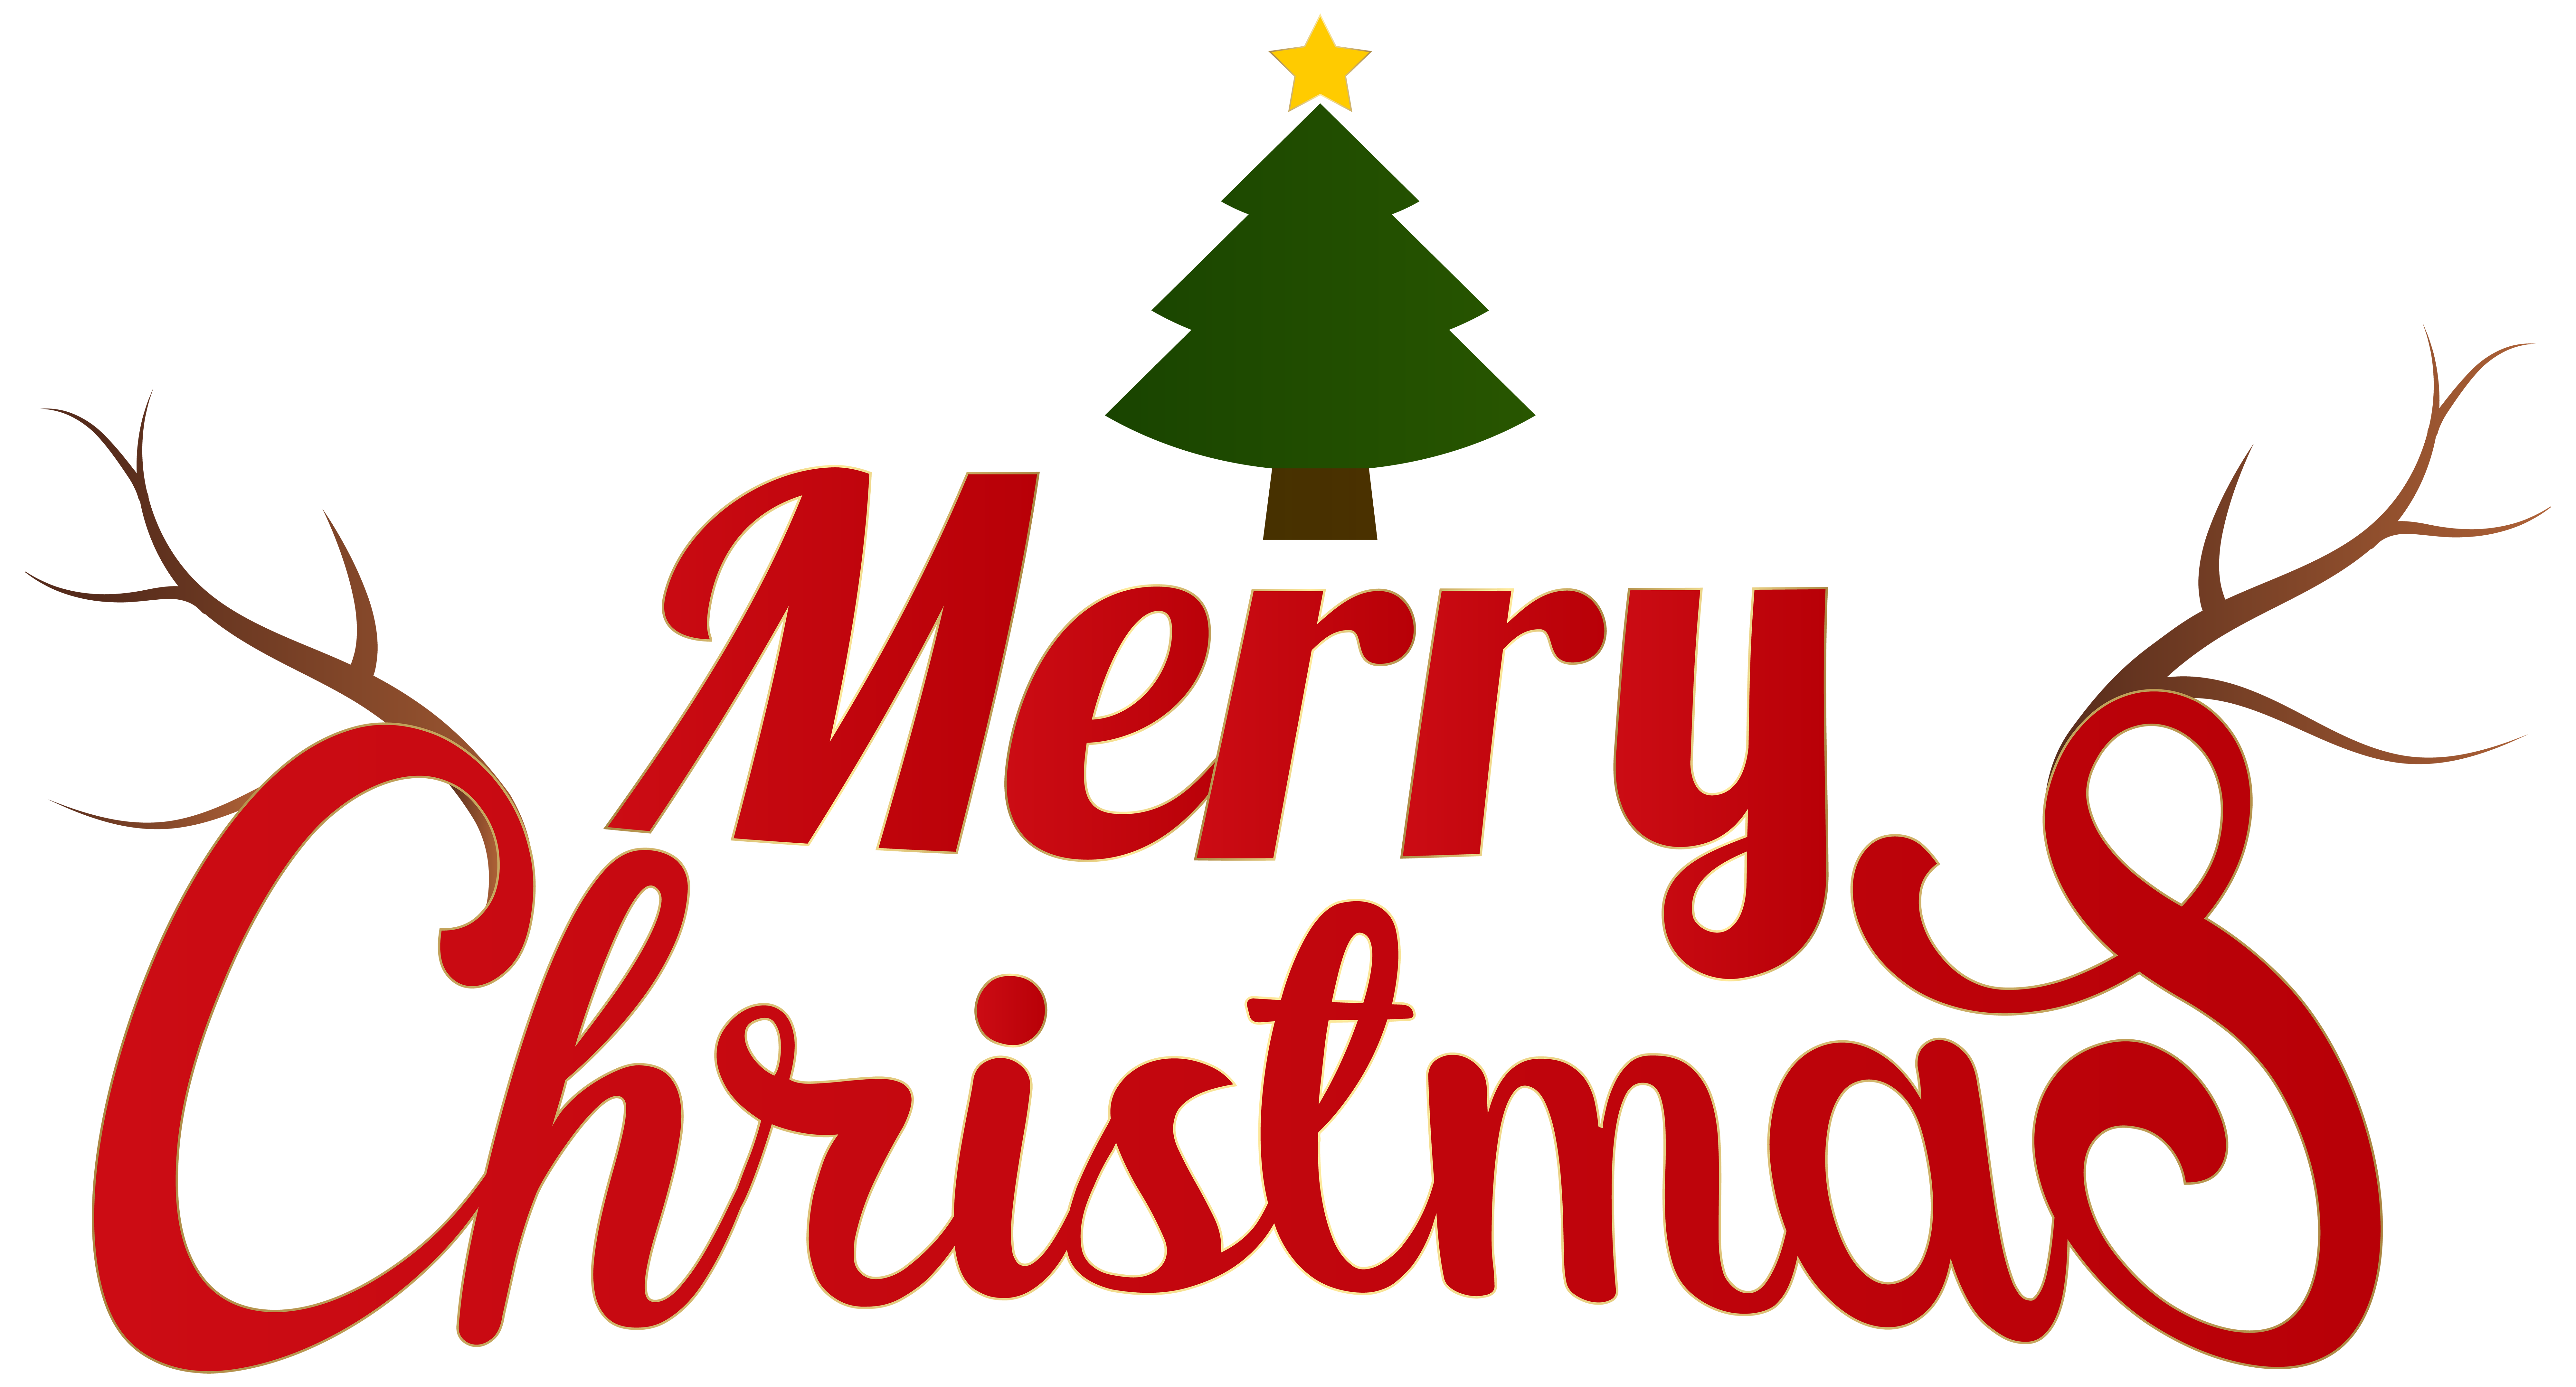 Merry christmas clipart transparent background. Clip art gallery yopriceville